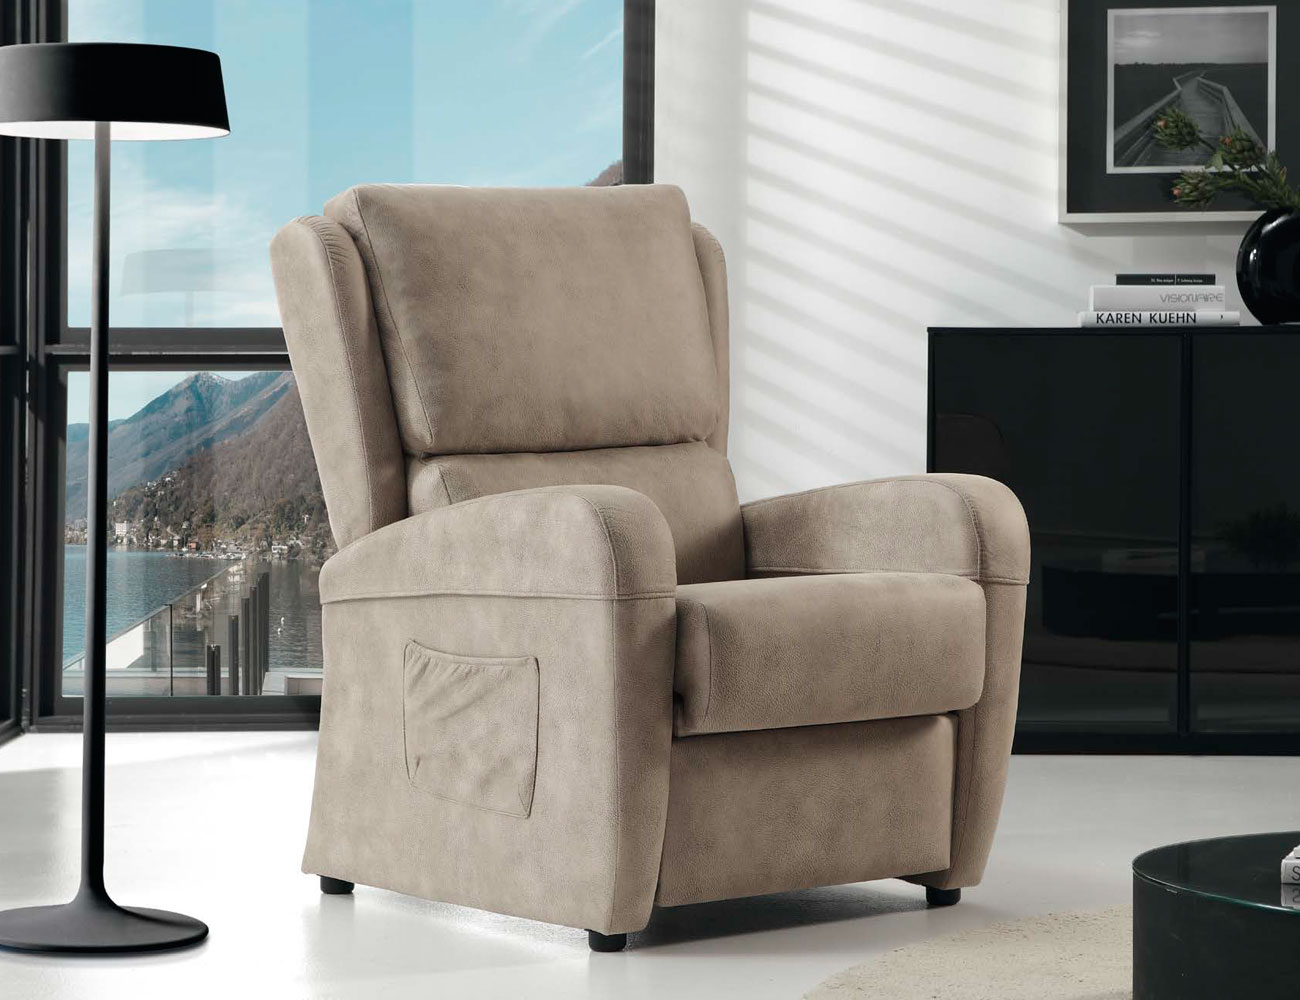 Sillon relax manual jana13